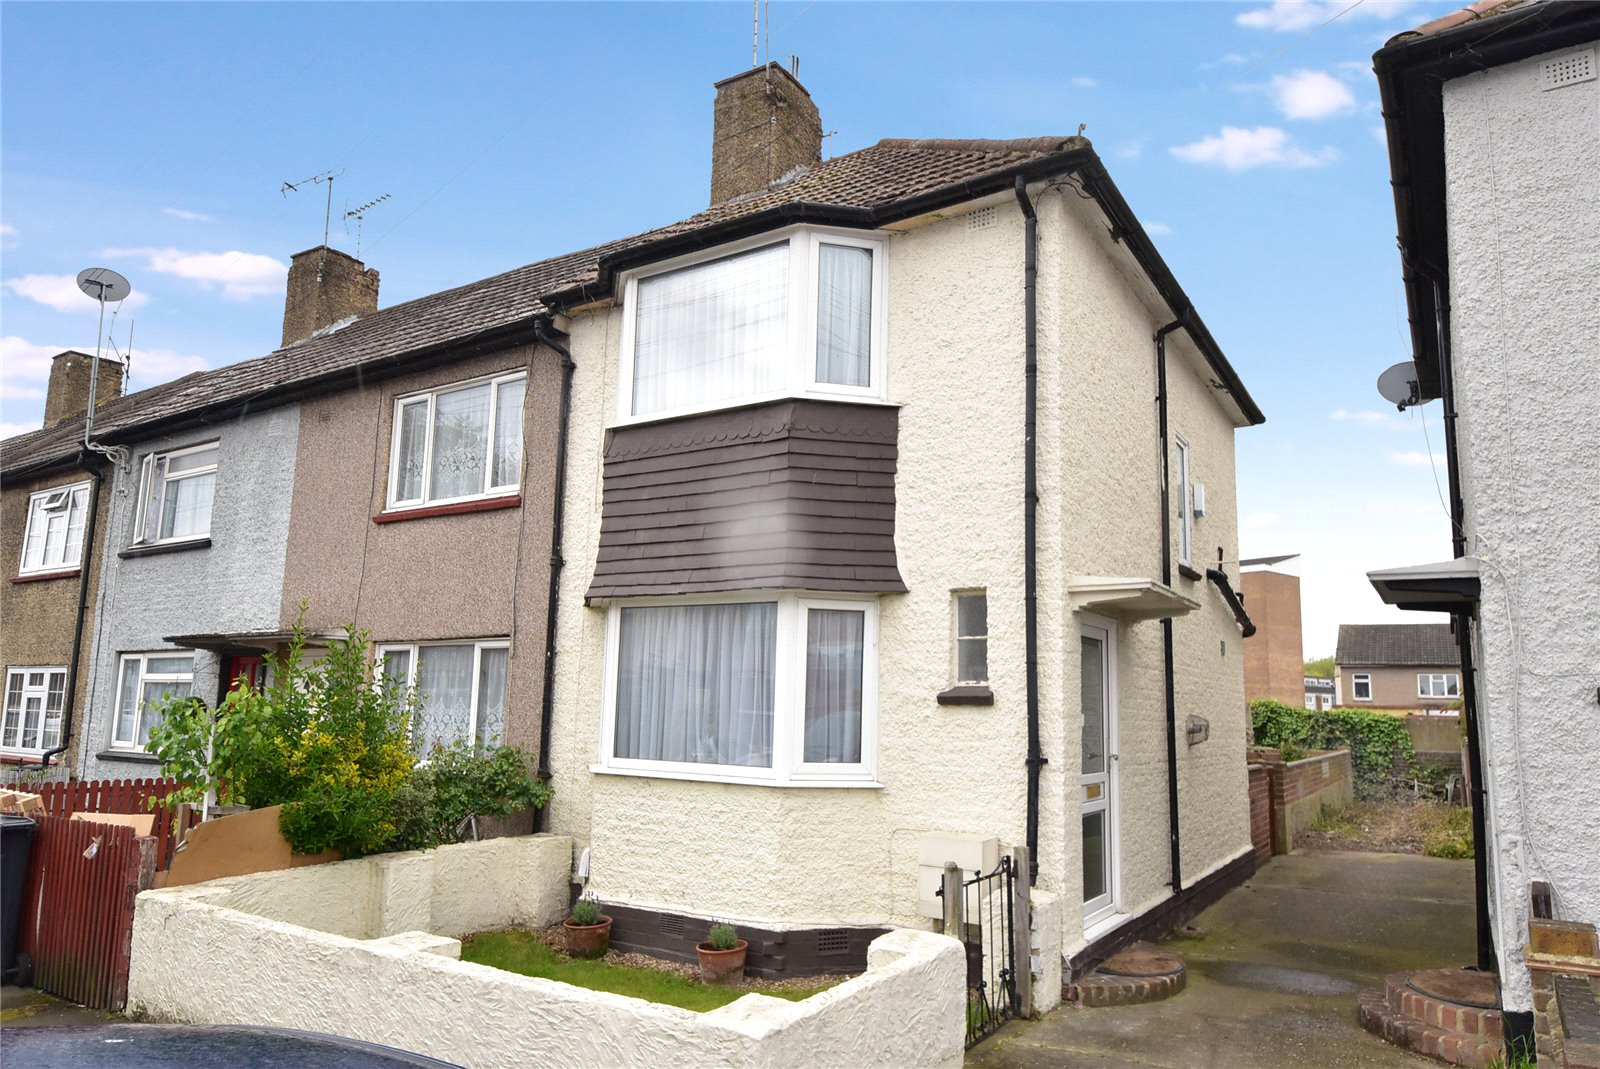 Gordon Road, Dartford, Kent, DA1